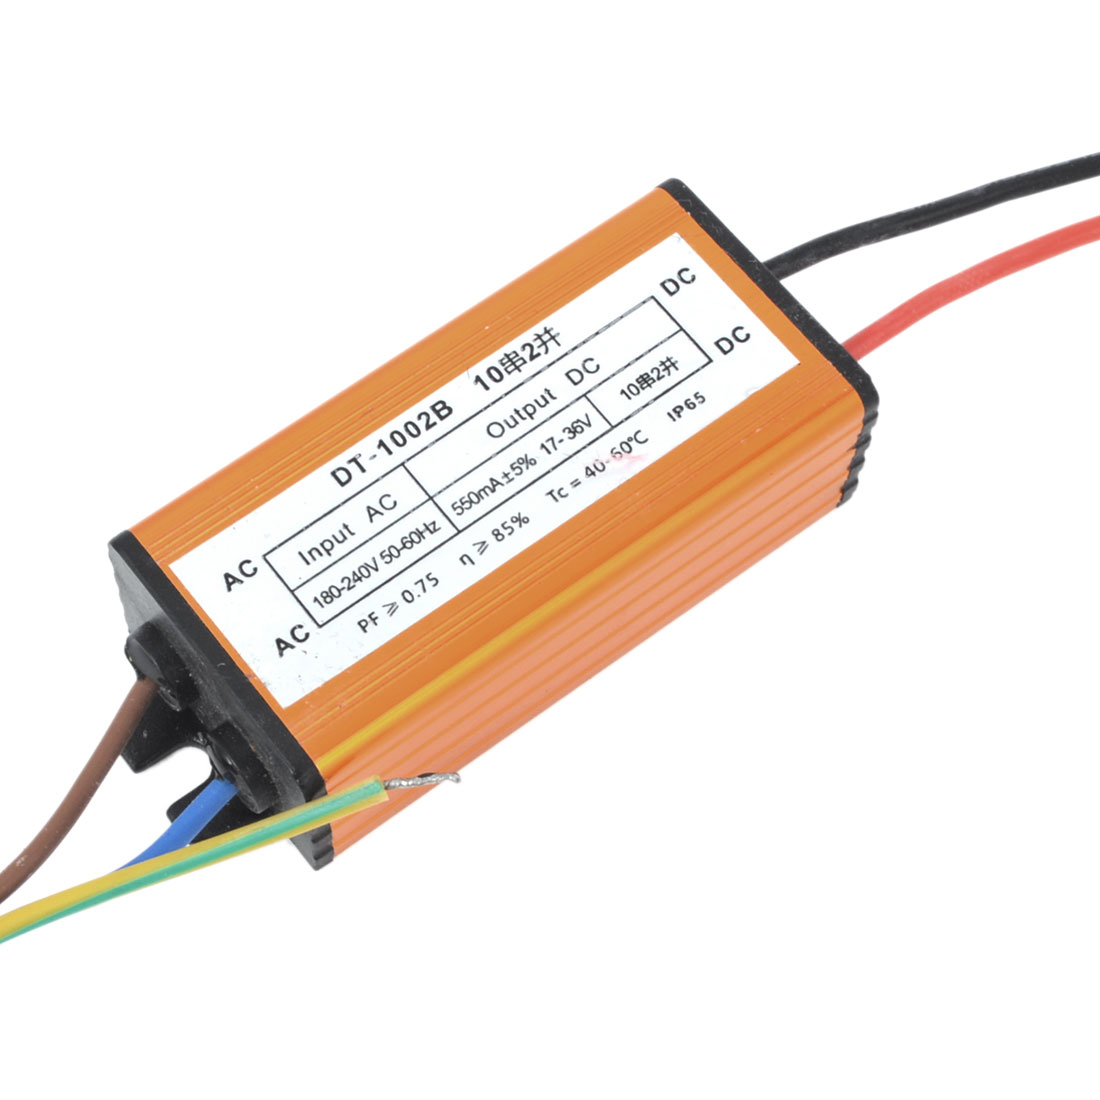 DC 17-36V 550mA 20W Aluminum Waterproof LED Driver Transformer Power Supply